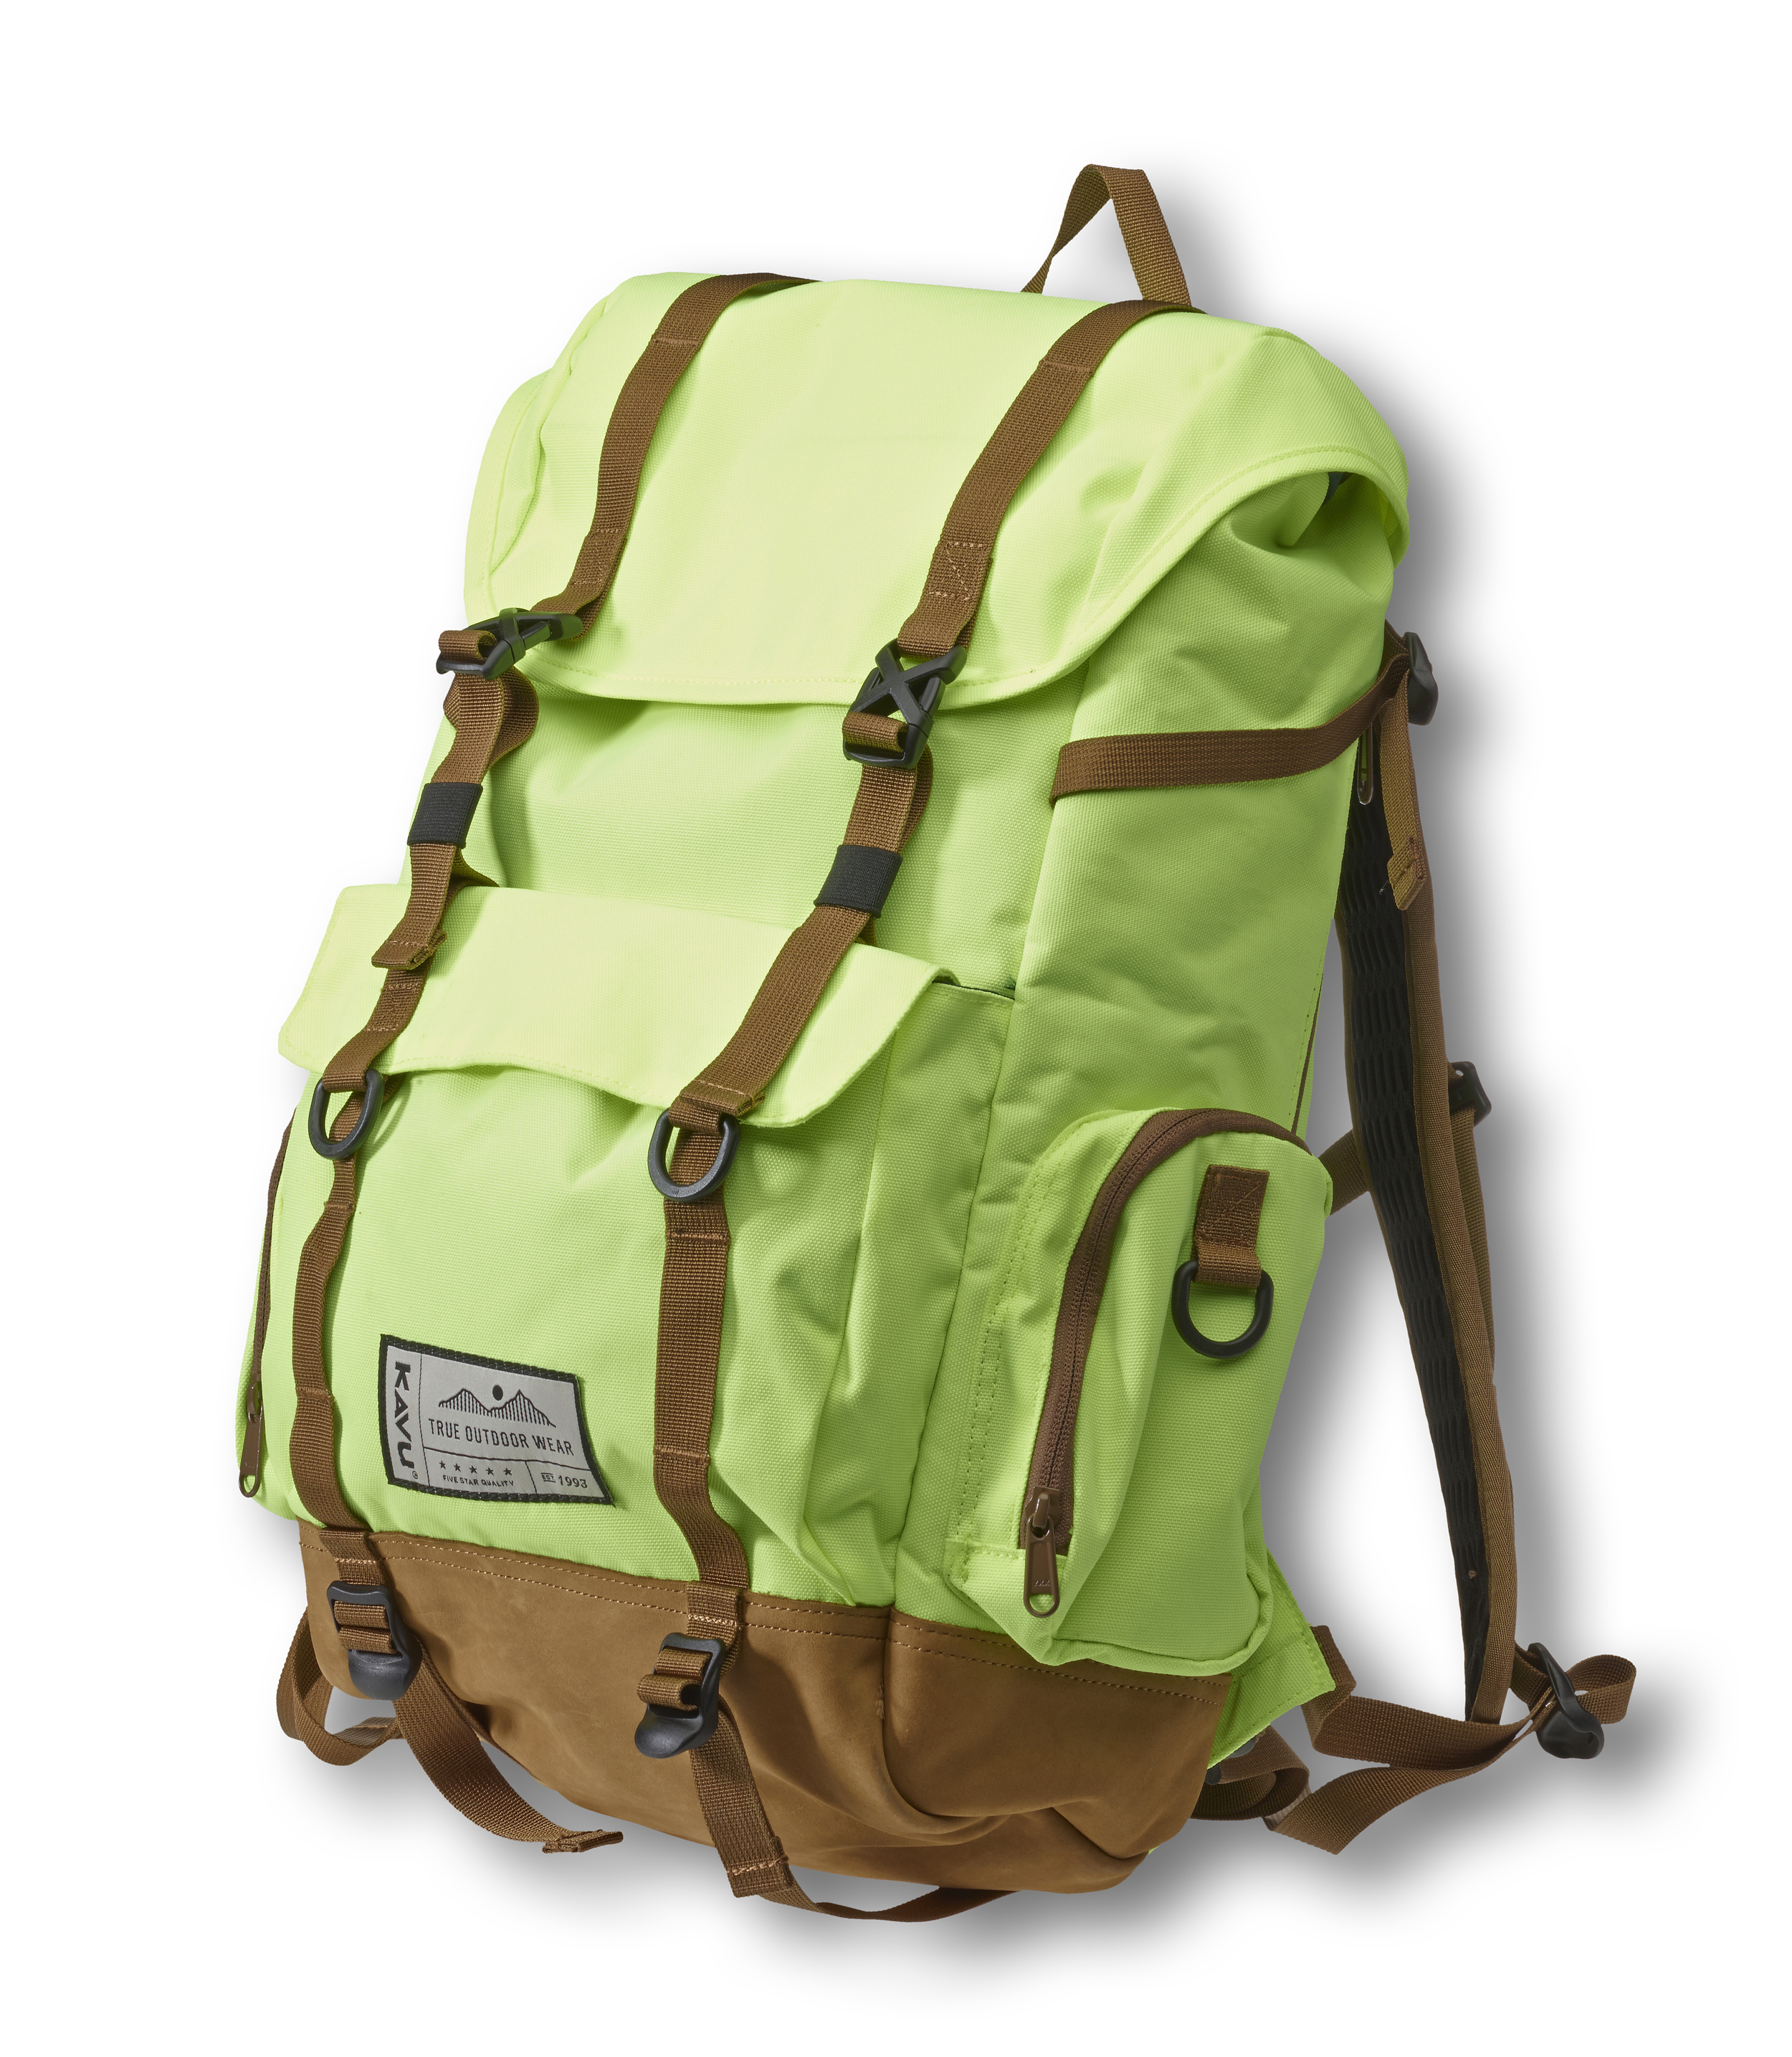 KAVU // Camp Sherman   KAVU makes things that help you suck the fun out of life. They use the hashtag #busylivin because their backpacks are made for hiking, paddling, sky diving, biking, climbing, surfing, vanning, and fun-making.    $120 //  kavu.com  // Made in Vietnam